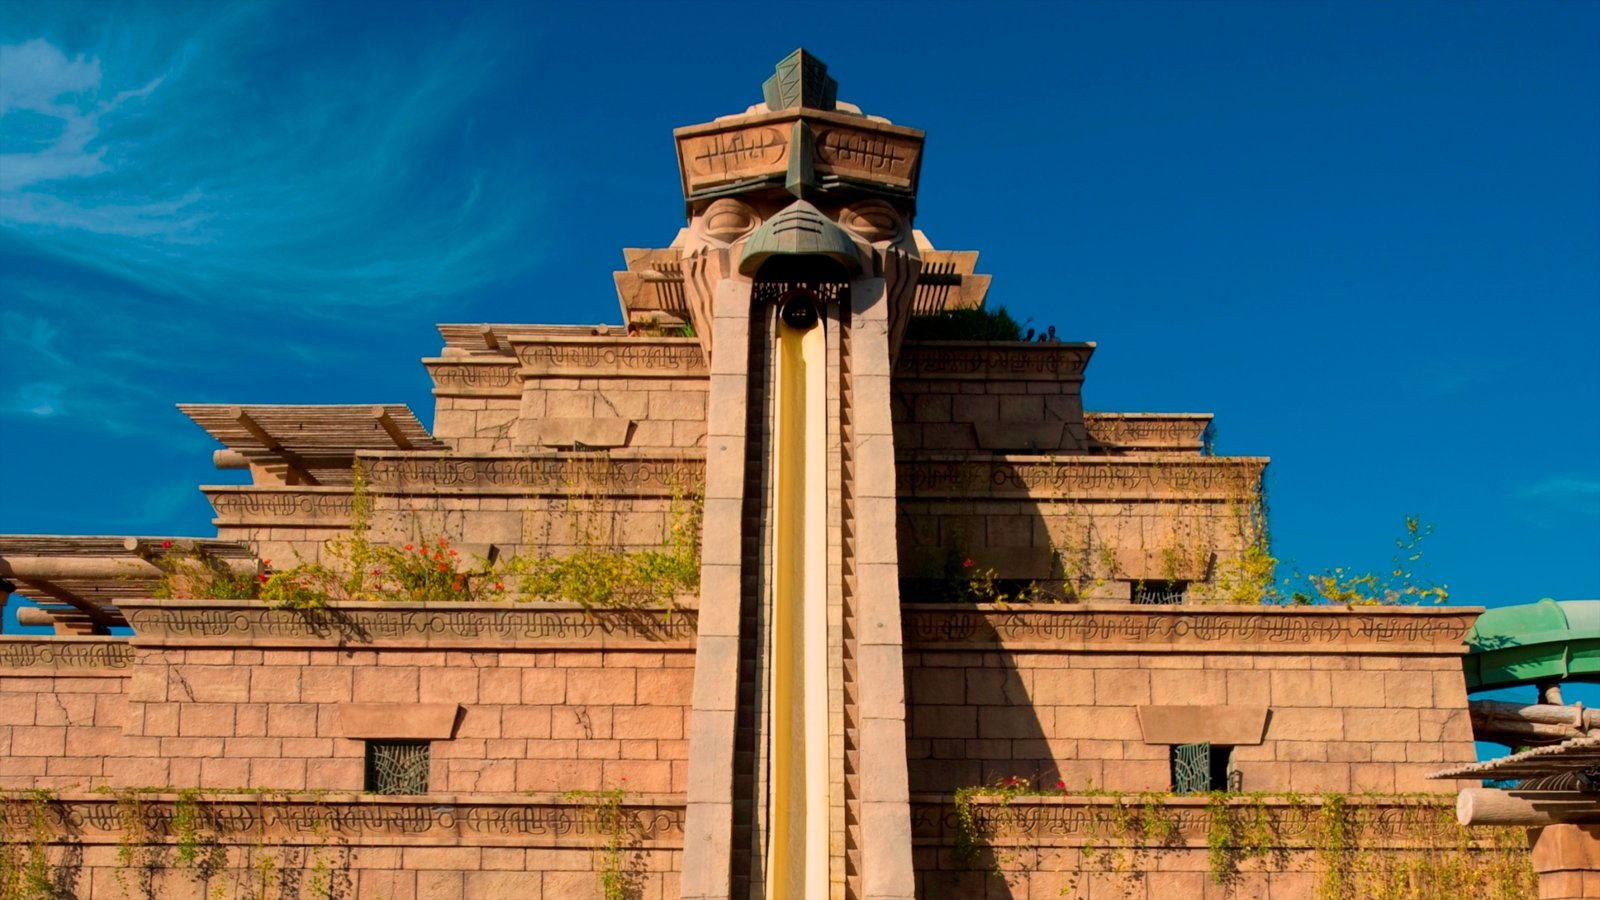 Aquaventure featuring a water park and rides